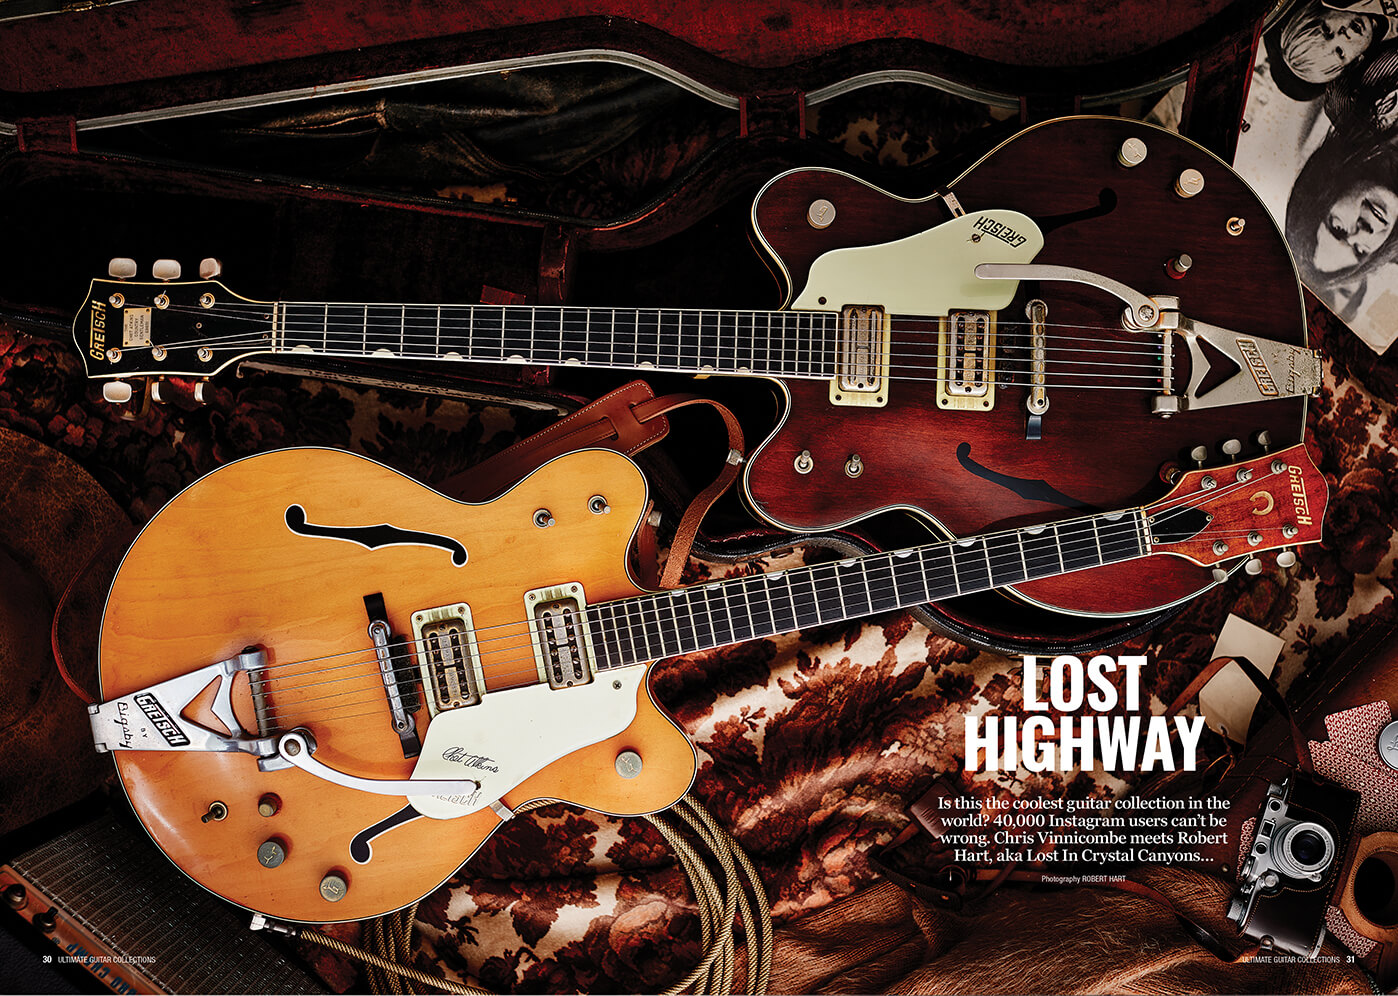 Lost in Crystal Canyons Guitar Collection